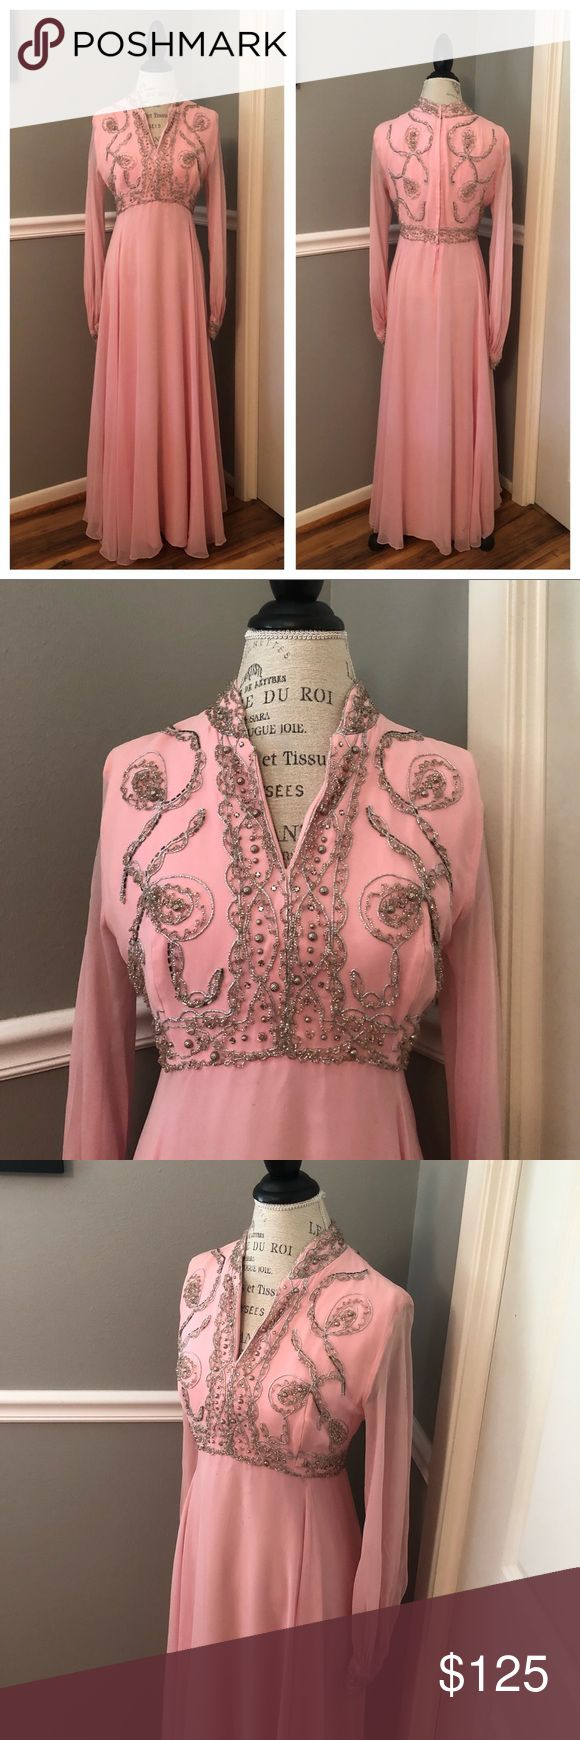 ✨VINTAGE•EXQUISITE•PINK•GOWN💫 Royalty, Coachella, Hippie Chic! Light Pink W/Silver Beading. Fully Lined W/Sheer Top Layer/Sleeves. Hand Bea...